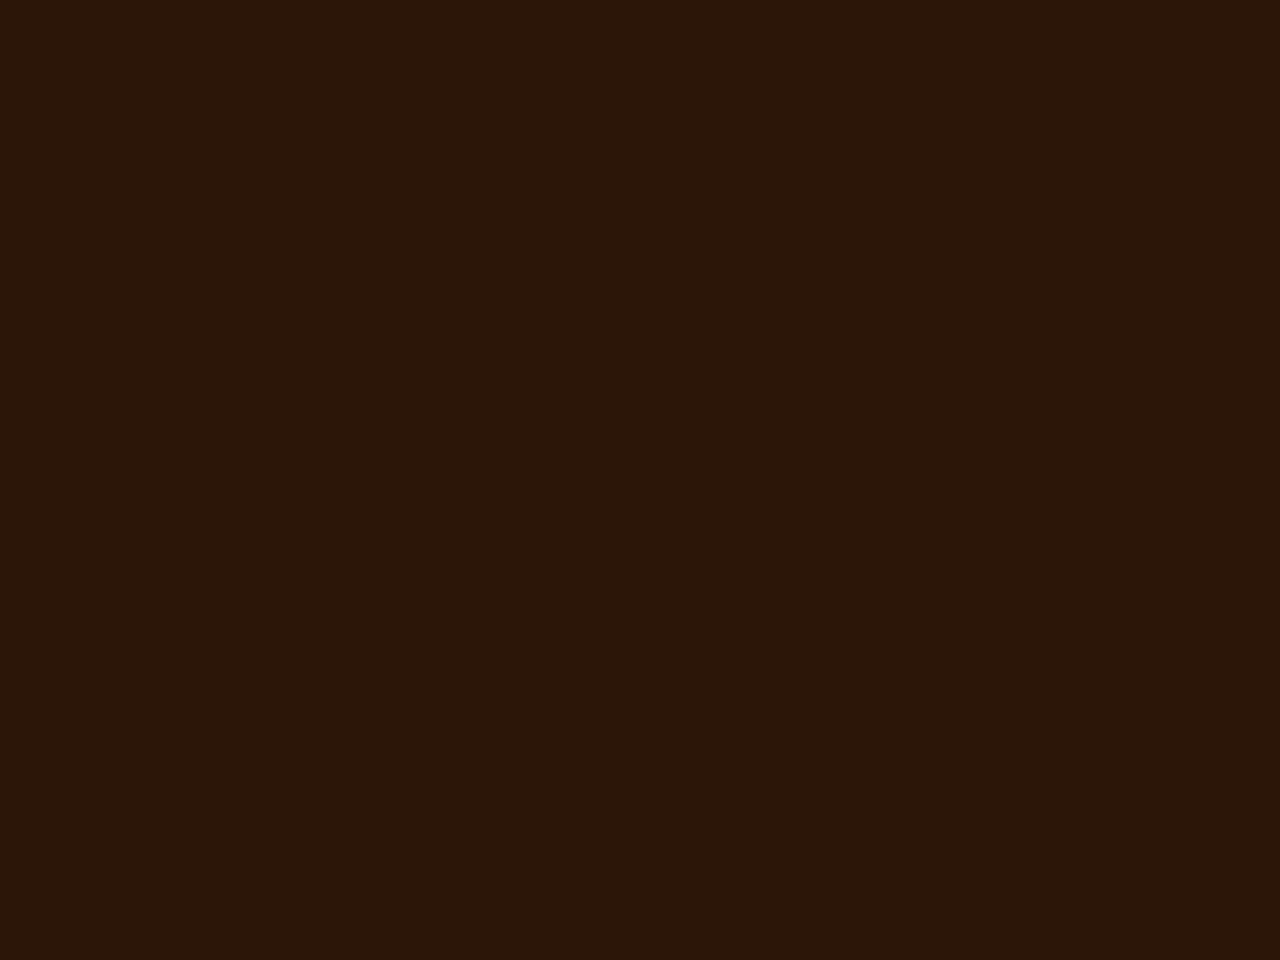 1280x960 Zinnwaldite Brown Solid Color Background